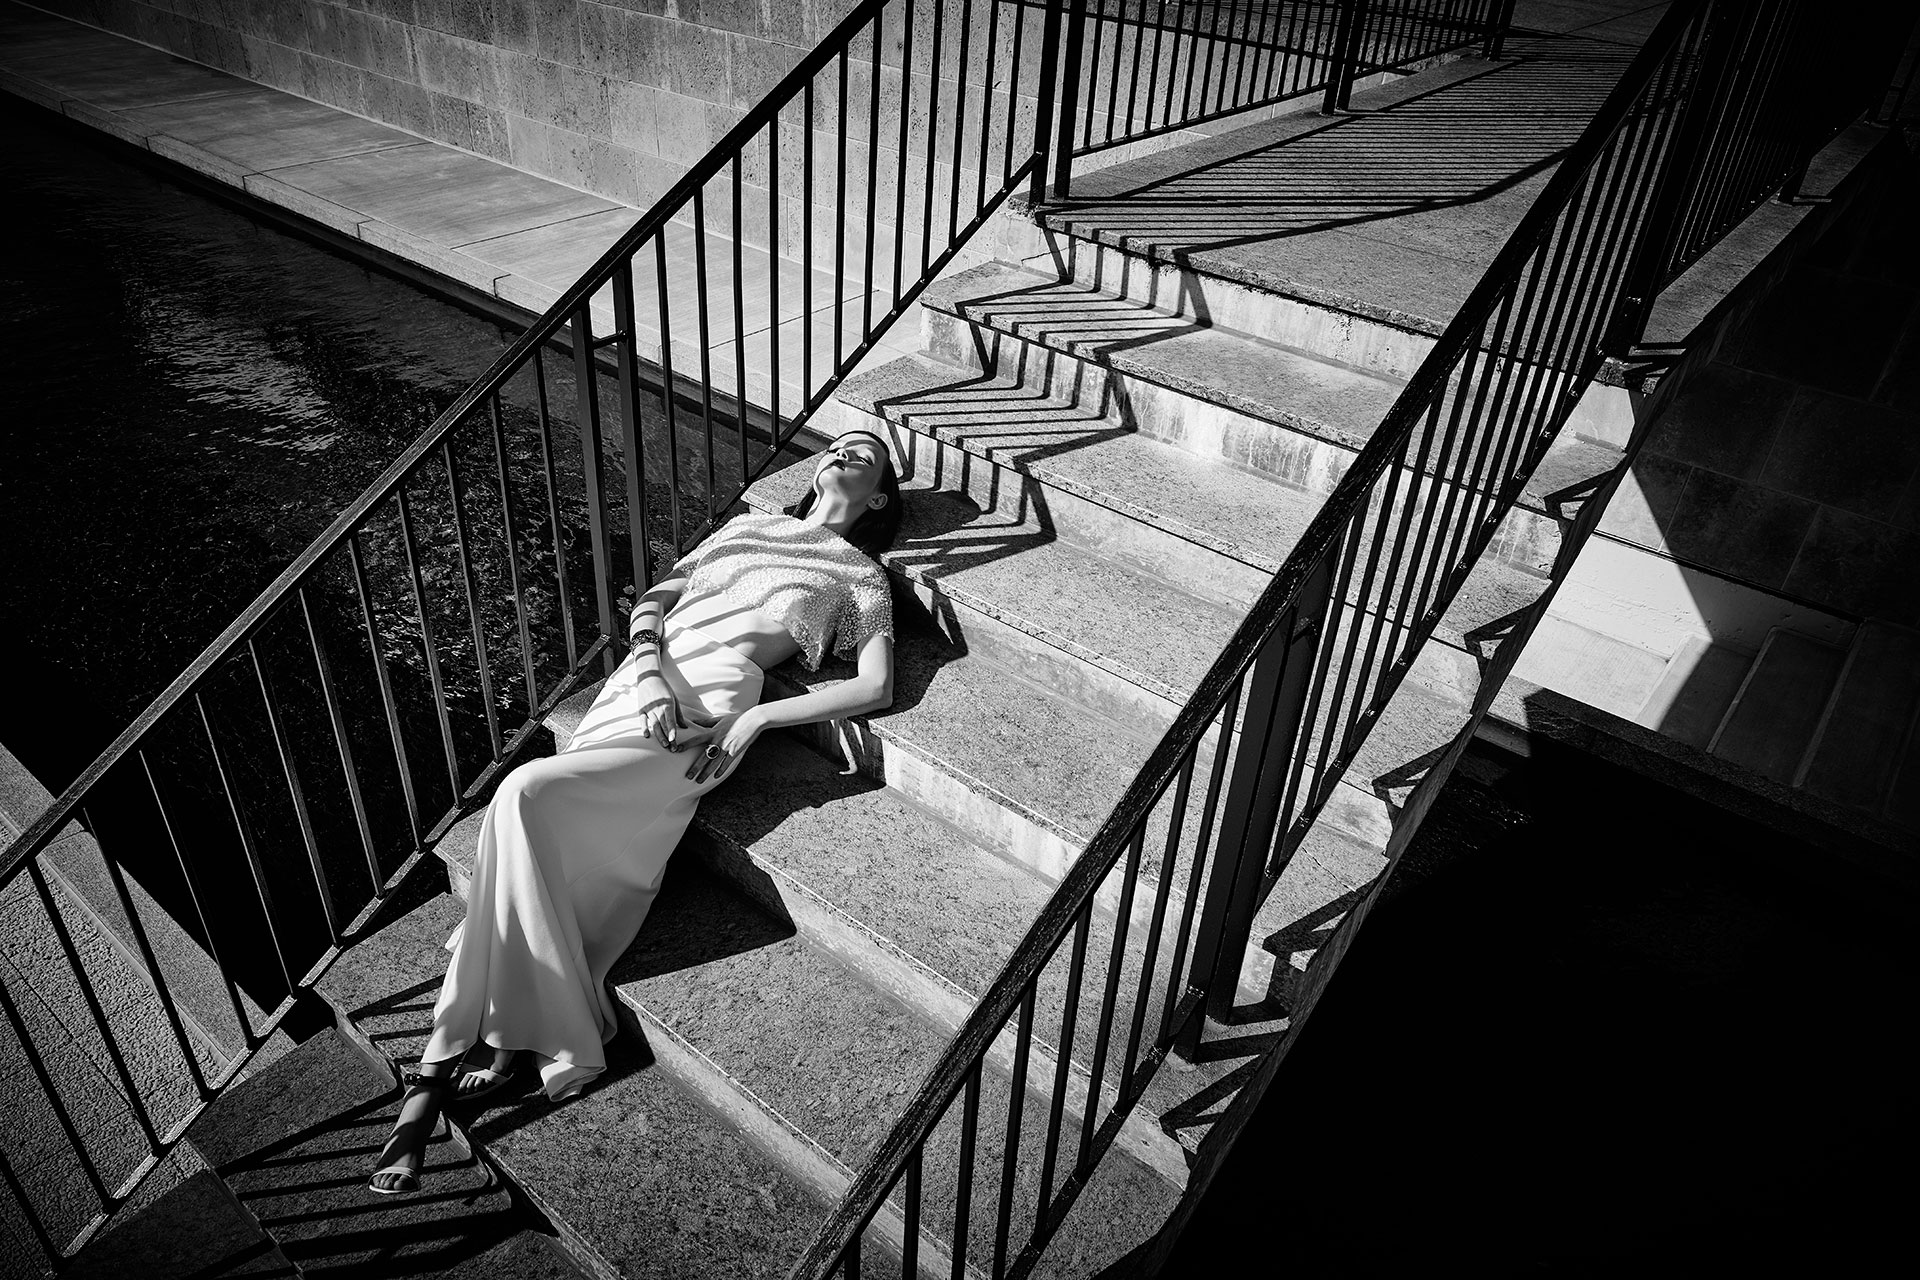 Look_6_Stairs_000029